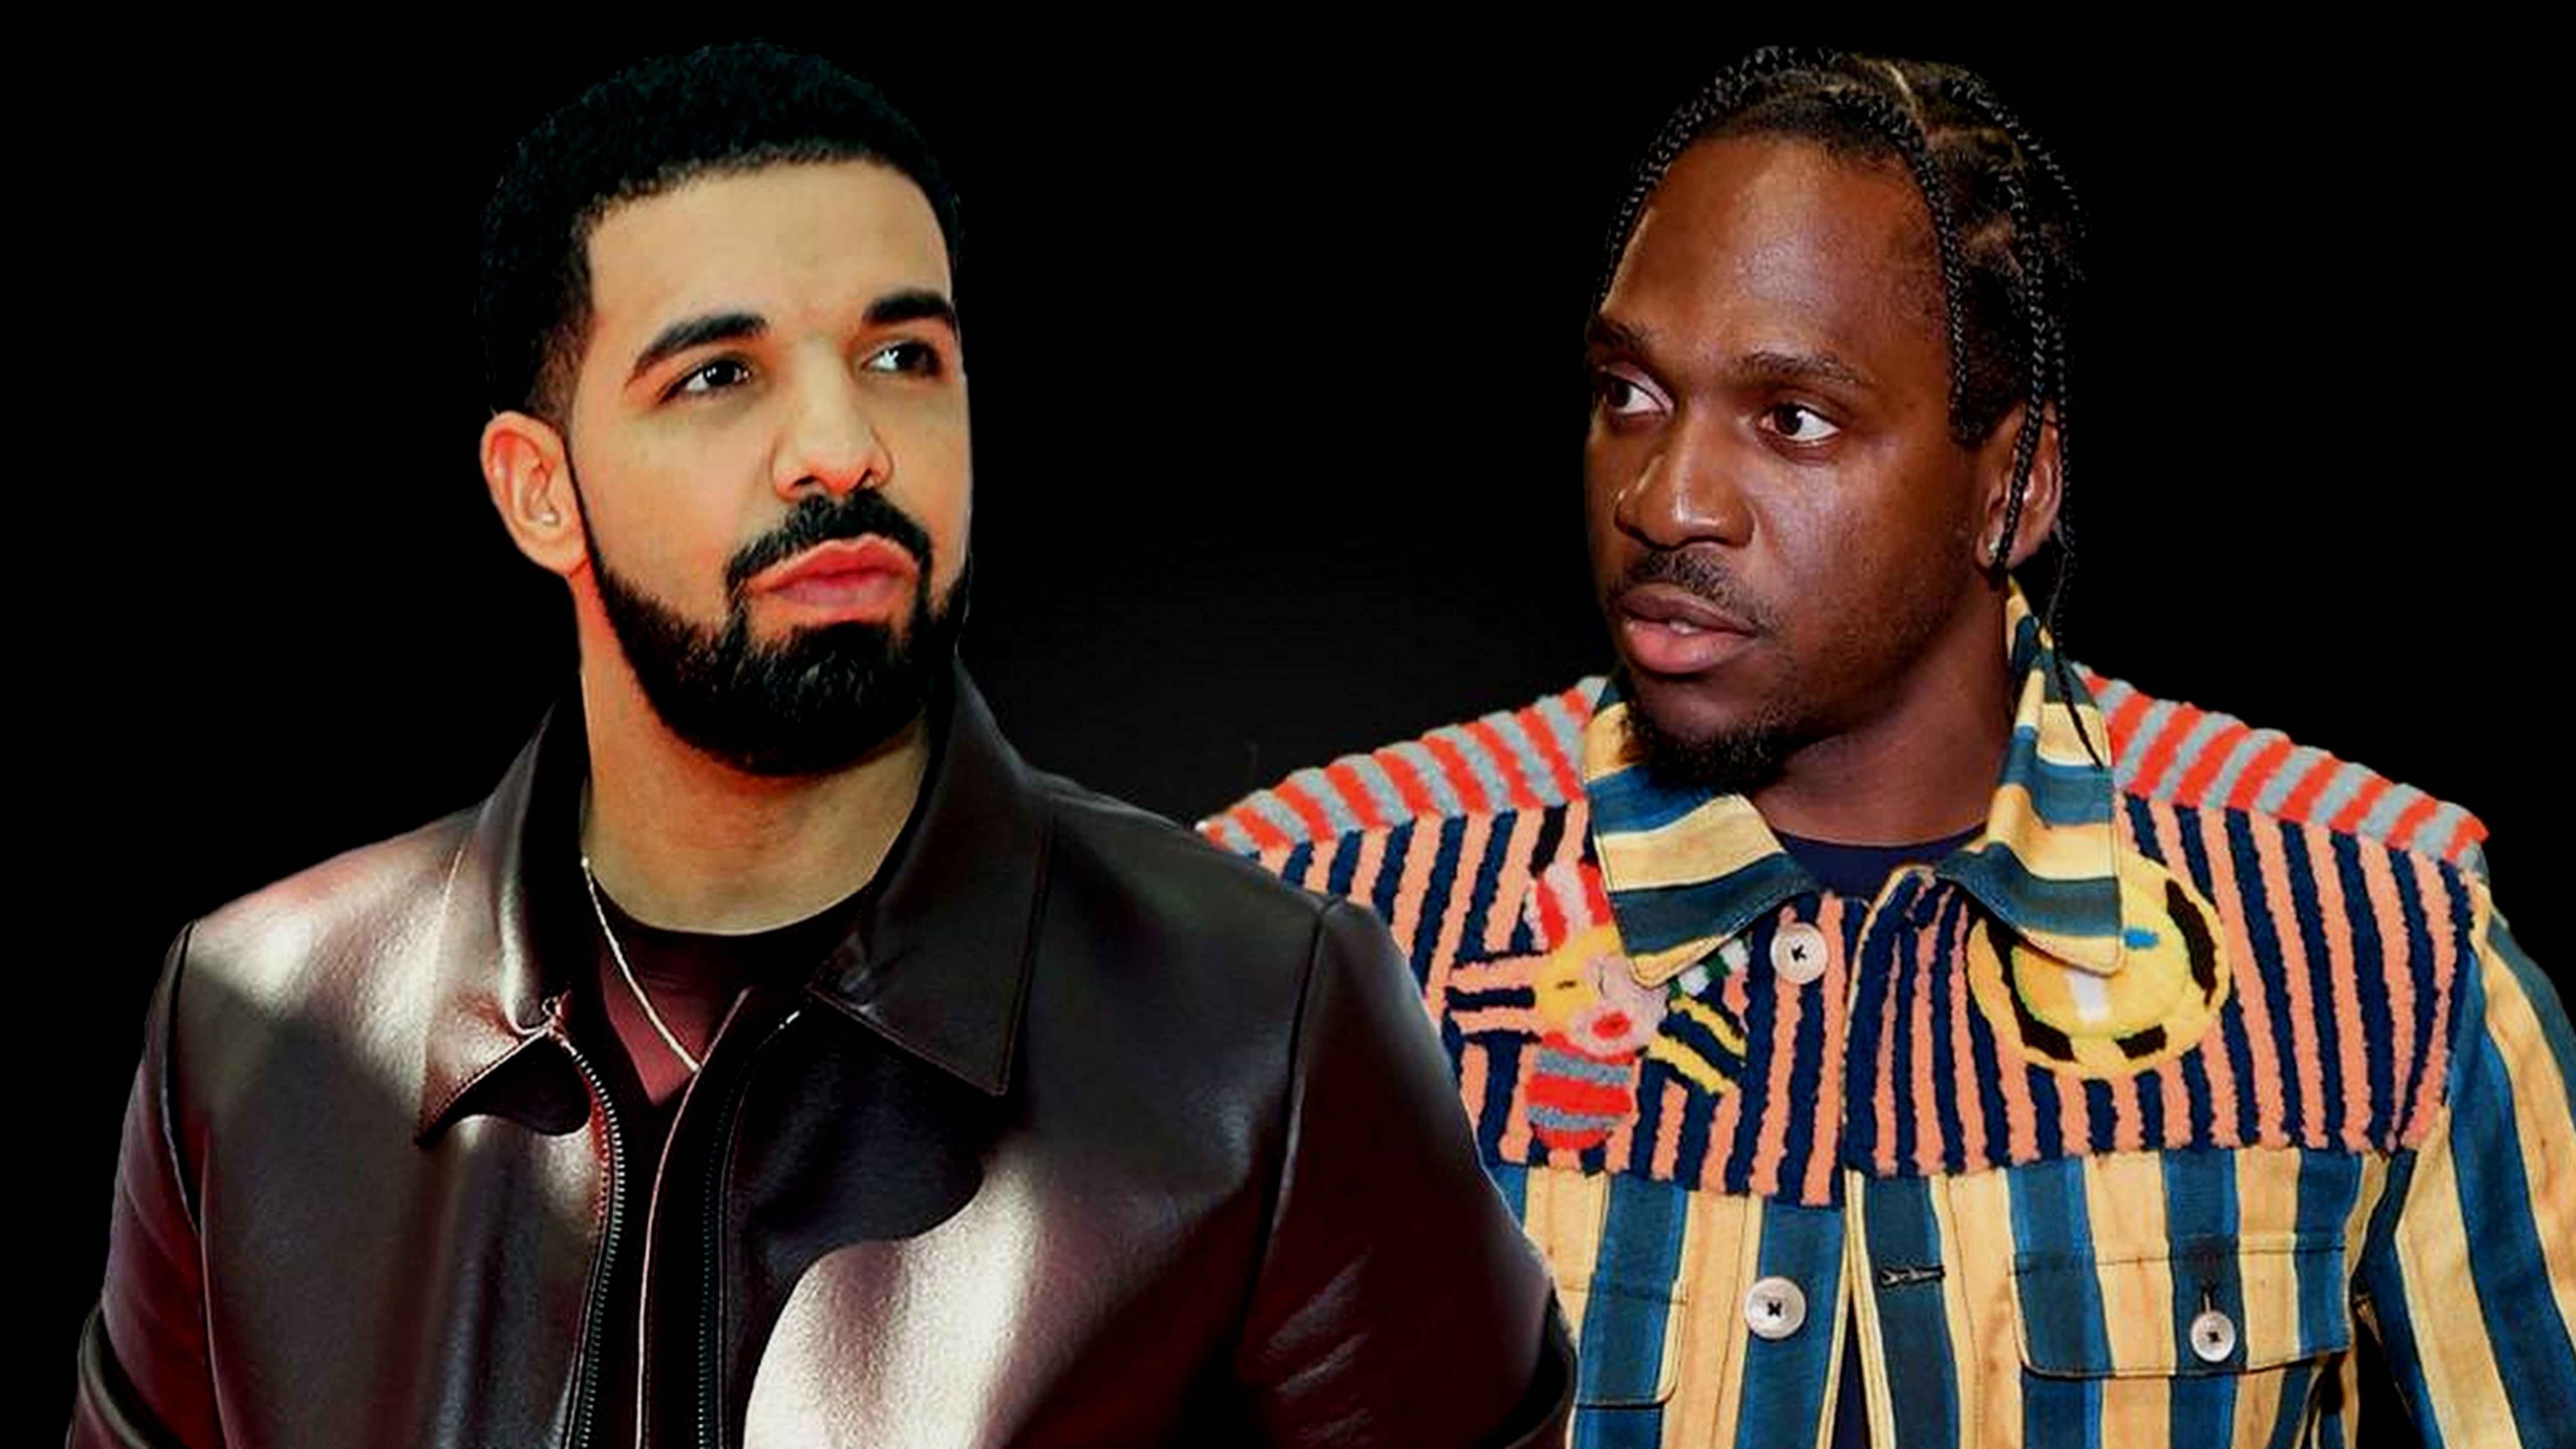 https://www.eonline.com/news/939944/6-savage-lines-from-drake-and-pusha-t-s-current-diss-track-war